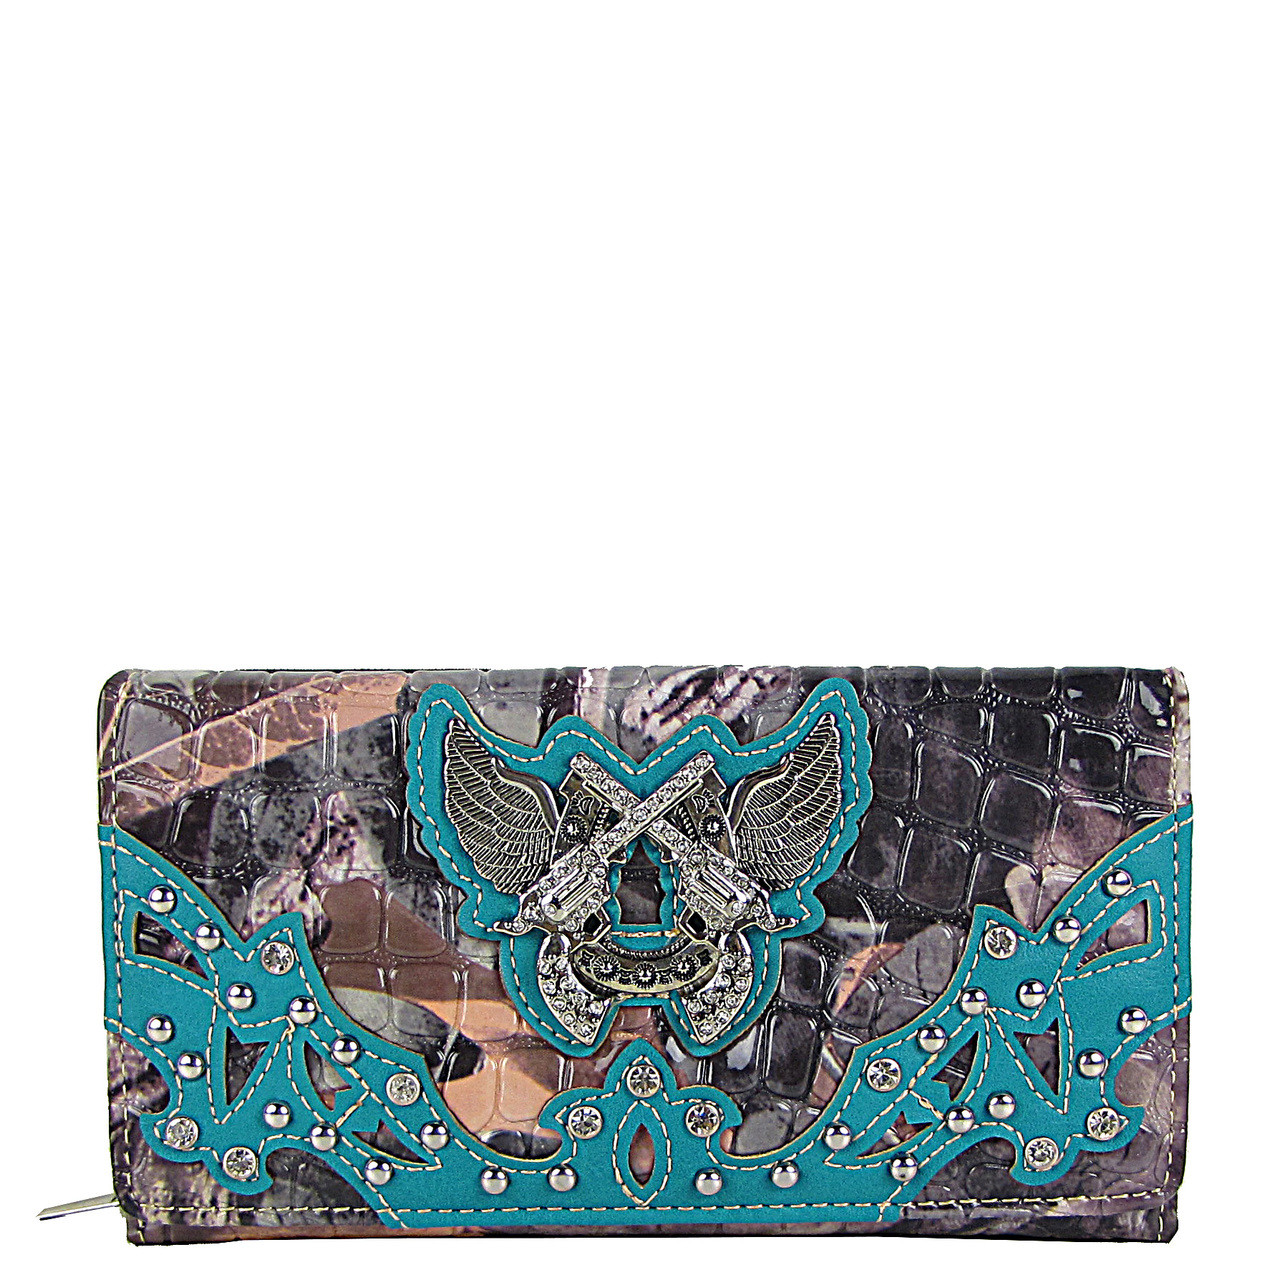 TURQUOISE CAMO RHINESTONE HORSESHOE WITH WINGS AND PISTOLS LOOK CHEKCBOOK WALLET CB1-1279TRQ